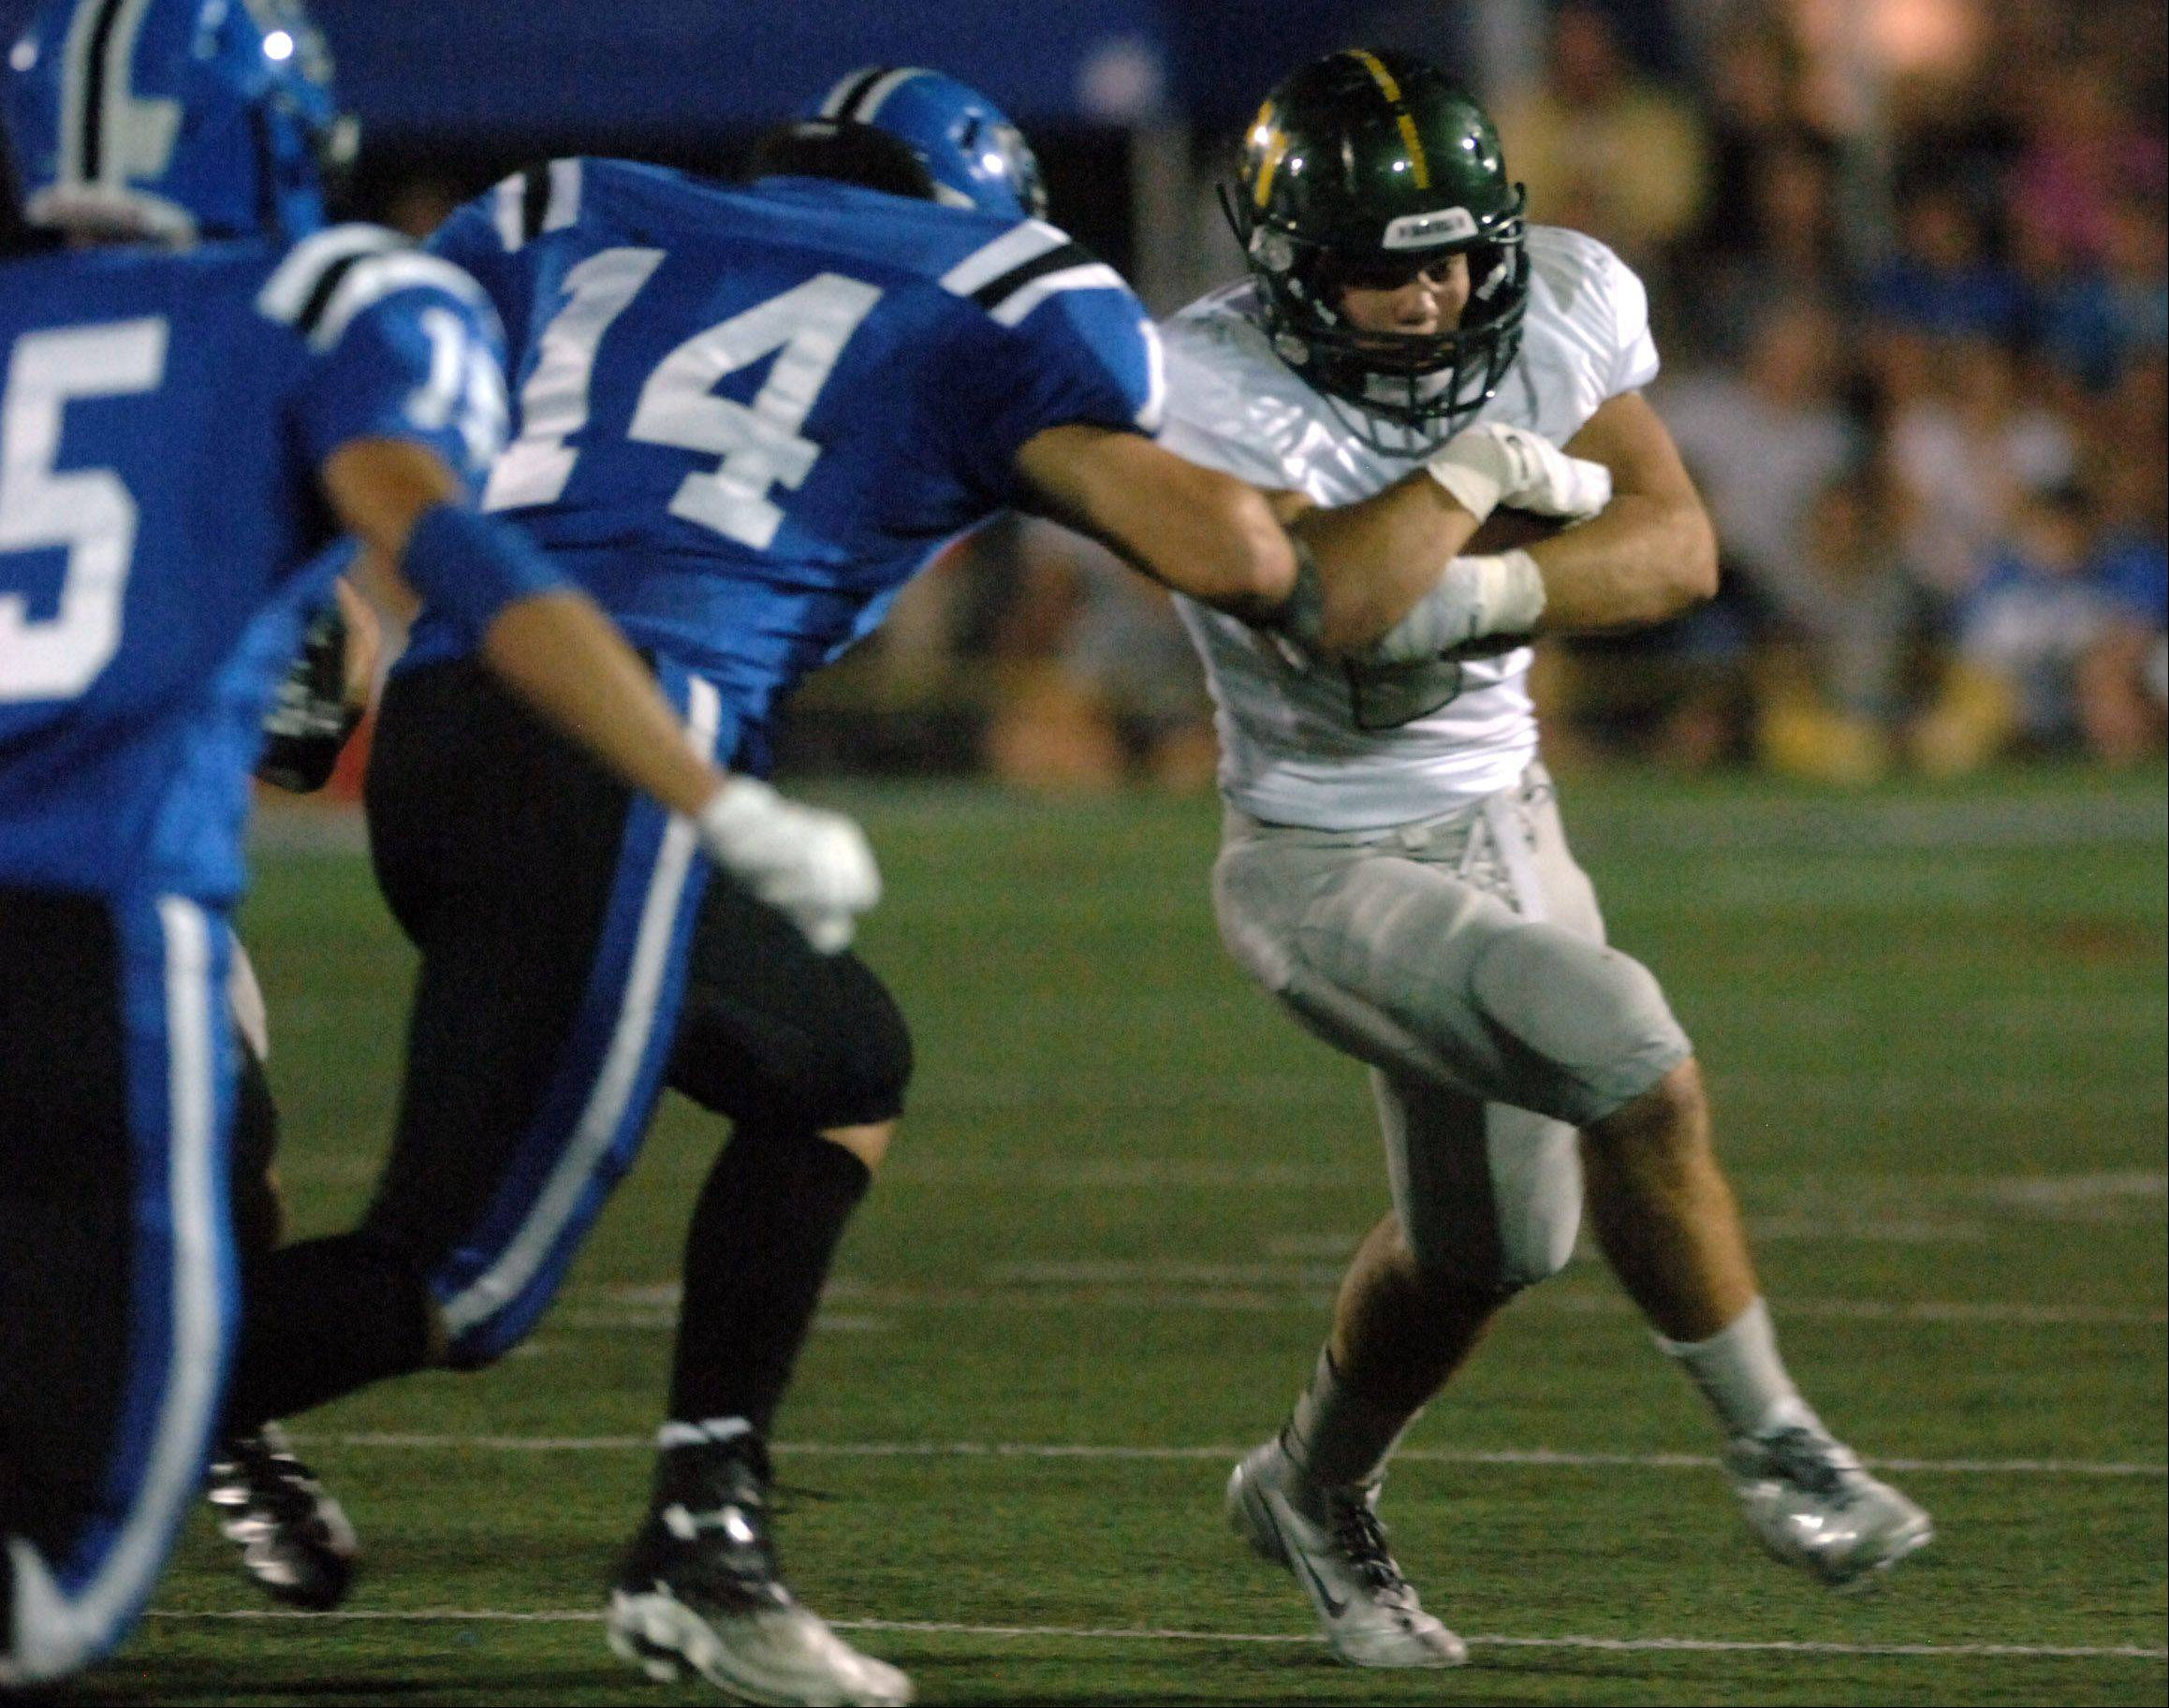 Fremd running back Jeff McGlade protects the ball from Lake Zurich's Tanner Kiser during Friday night's game in Lake Zurich.